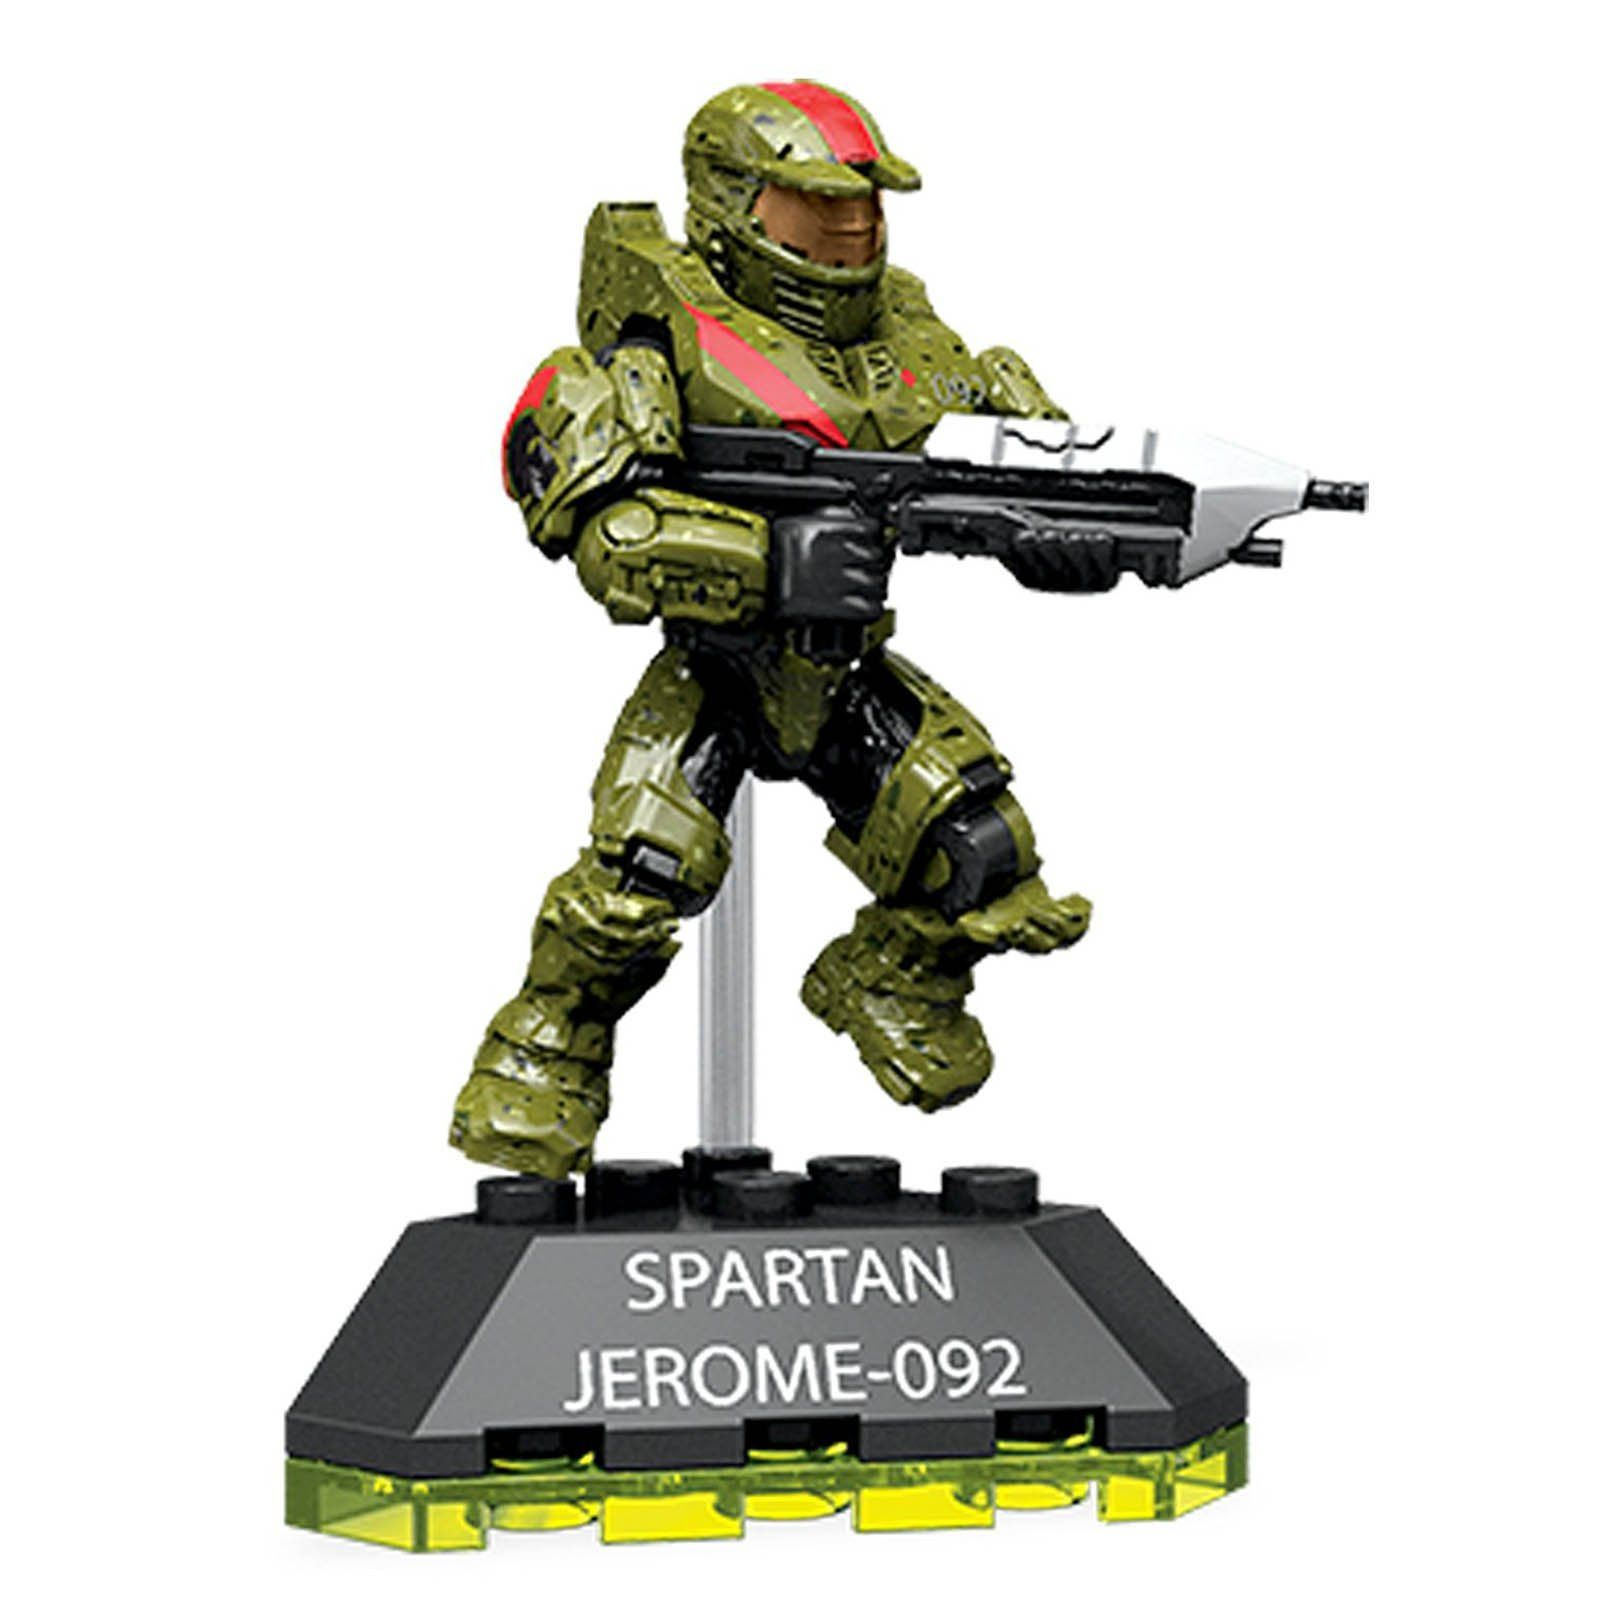 Mega Construx Halo Heroes Series 3 Spartan Jerome 092